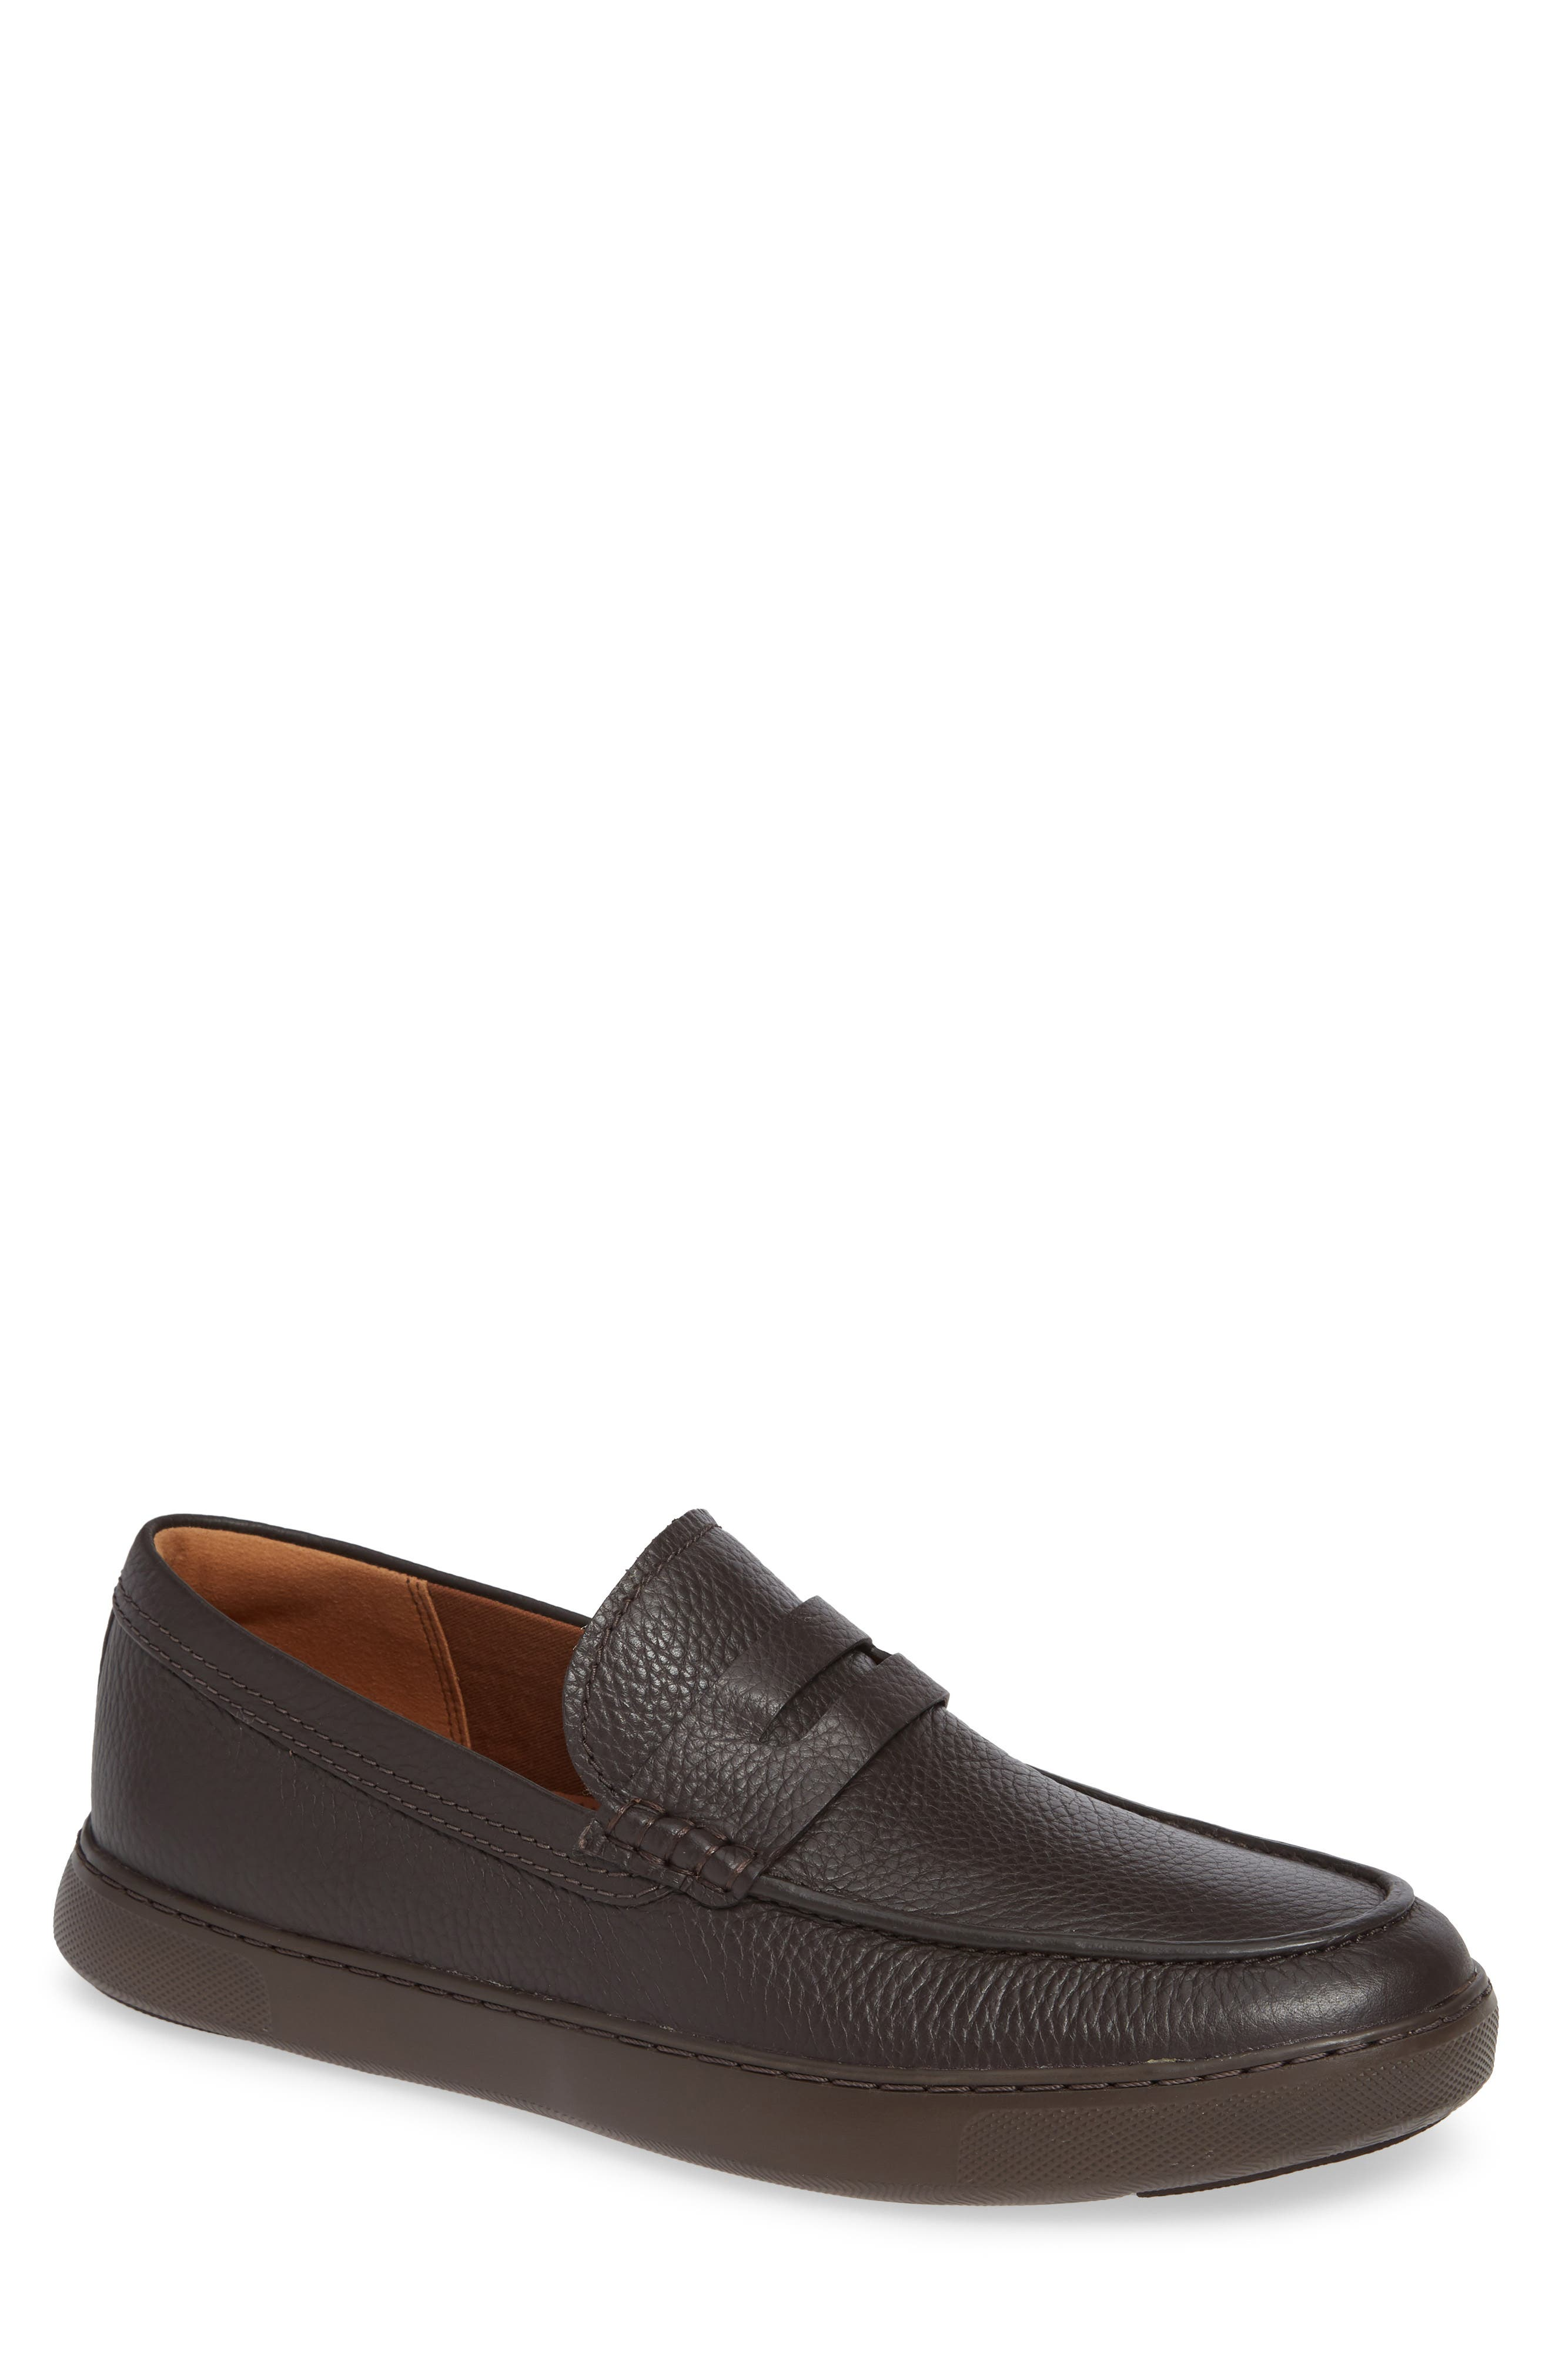 FITFLOP BOSTON MOC TOE PENNY LOAFER